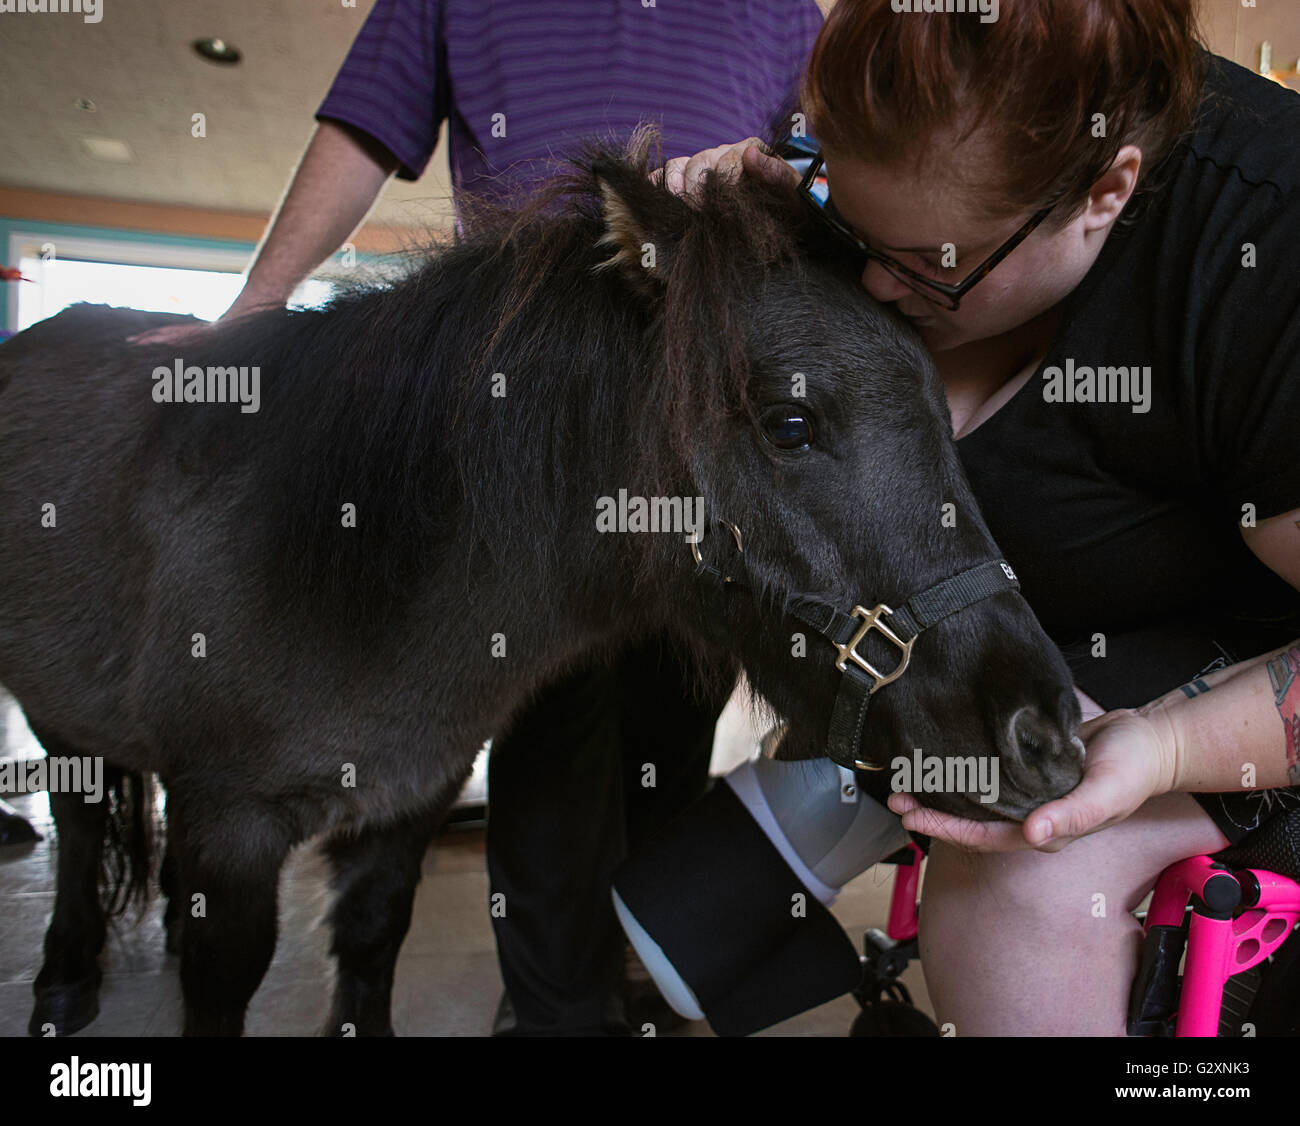 A miniature horse, working as a therapy animal visiting a recently injured patient at a rehab facility. - Stock Image